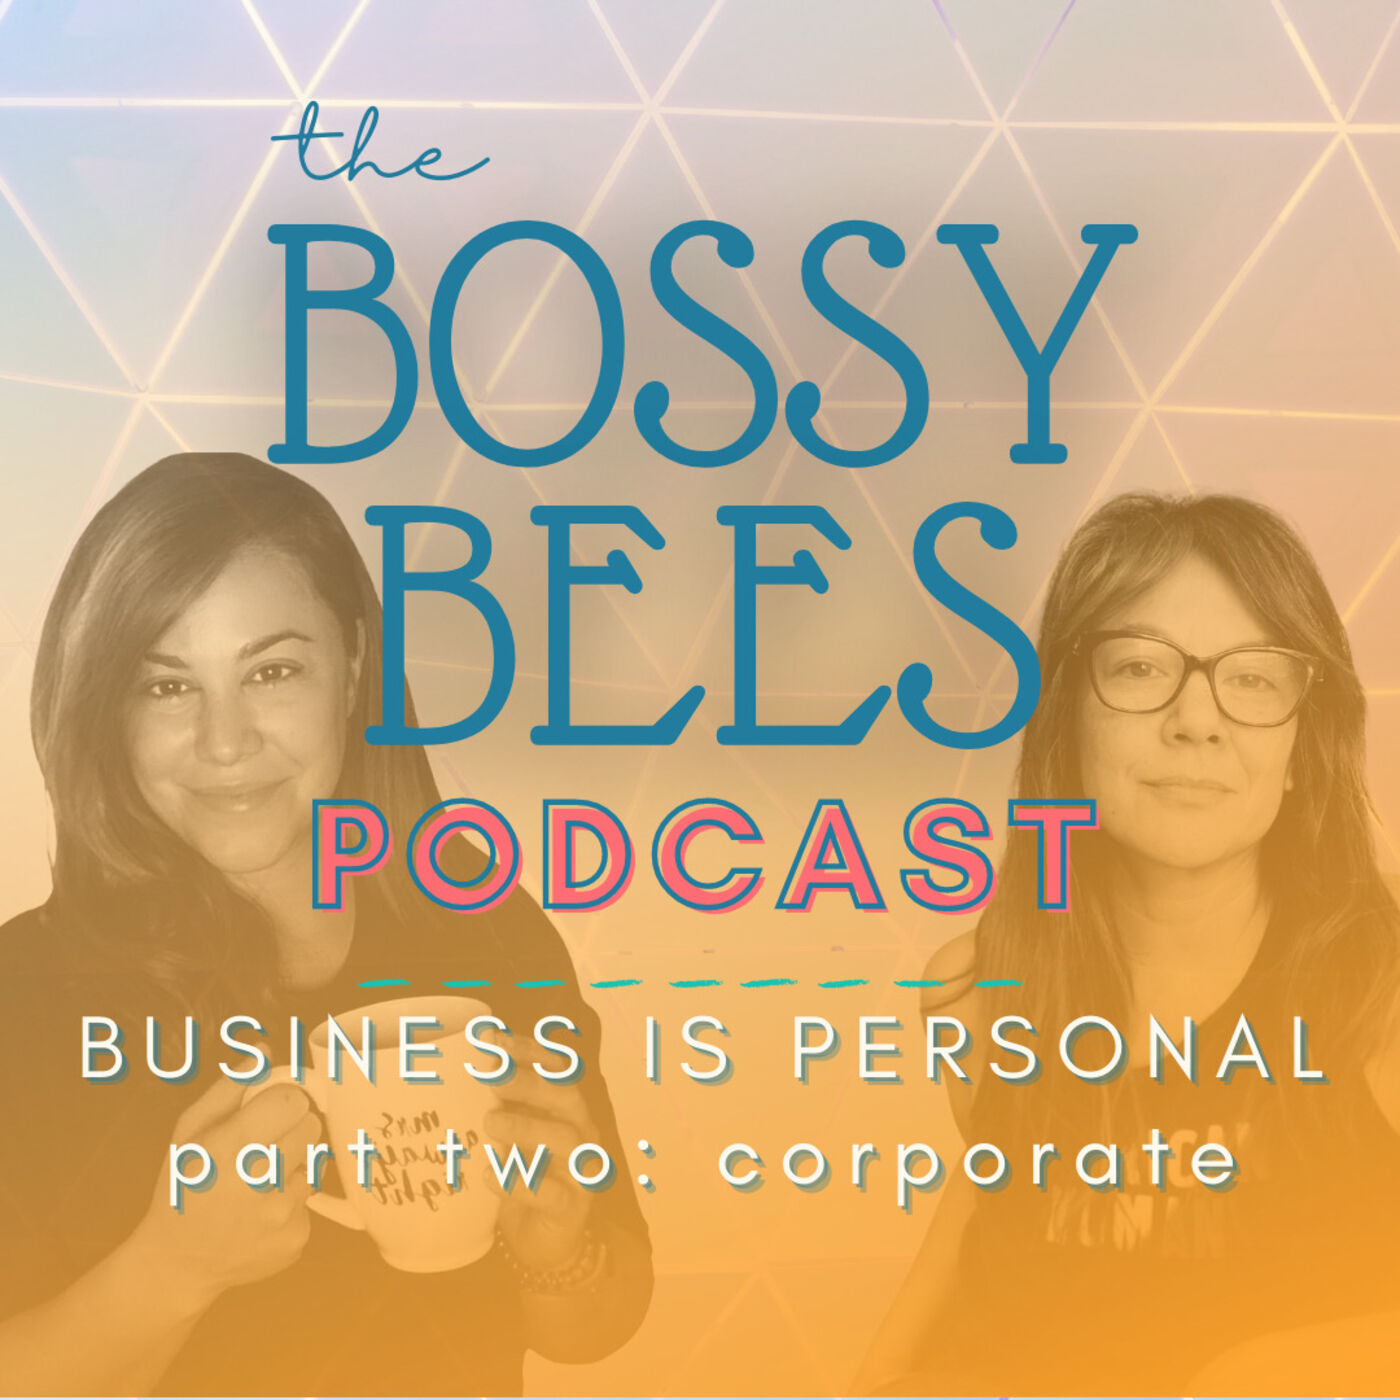 Business is Personal: The Corporate World